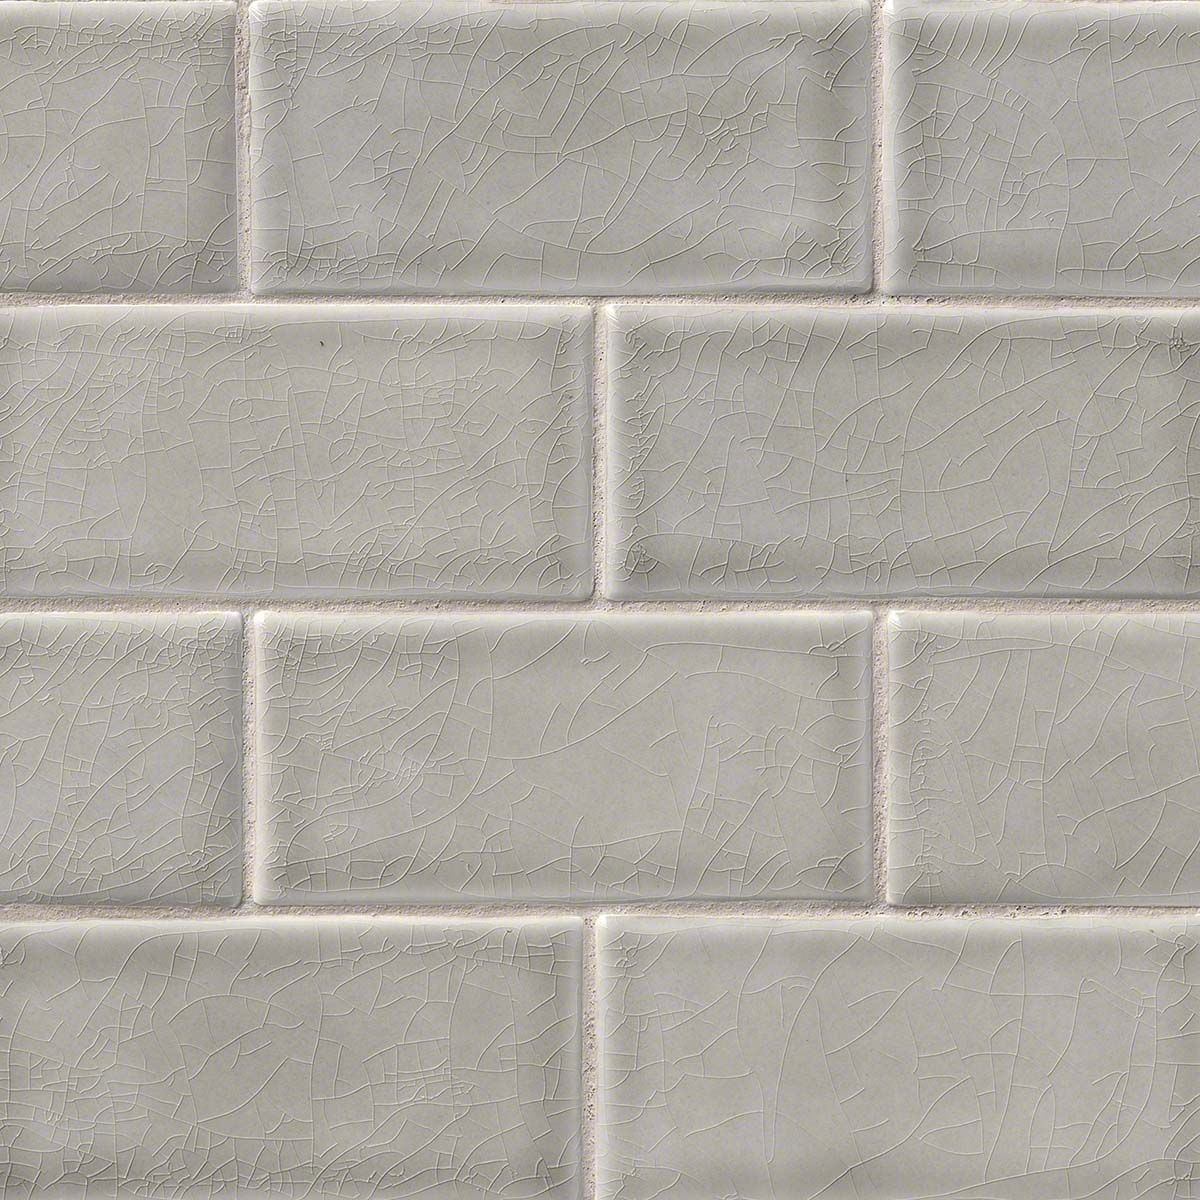 Dove Gray Glazed Handcrafted 3x6 Mosaics Subway Tile Backsplash Kitchen Grey Subway Tiles Grey Subway Tile Kitchen